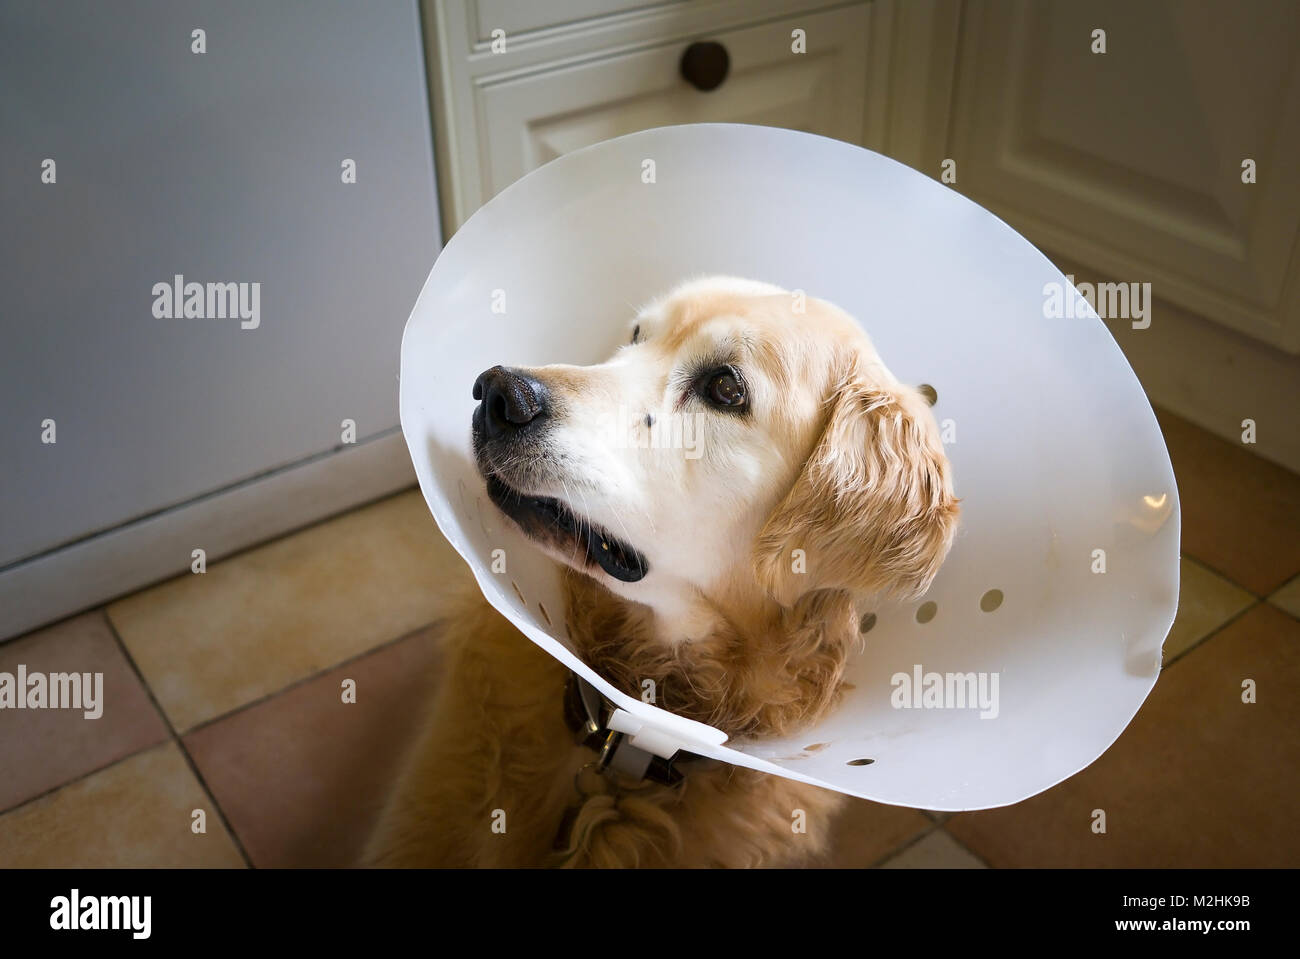 Golden Retriever dog wearing a post-operation surgical collar to help his recovery in UK - Stock Image